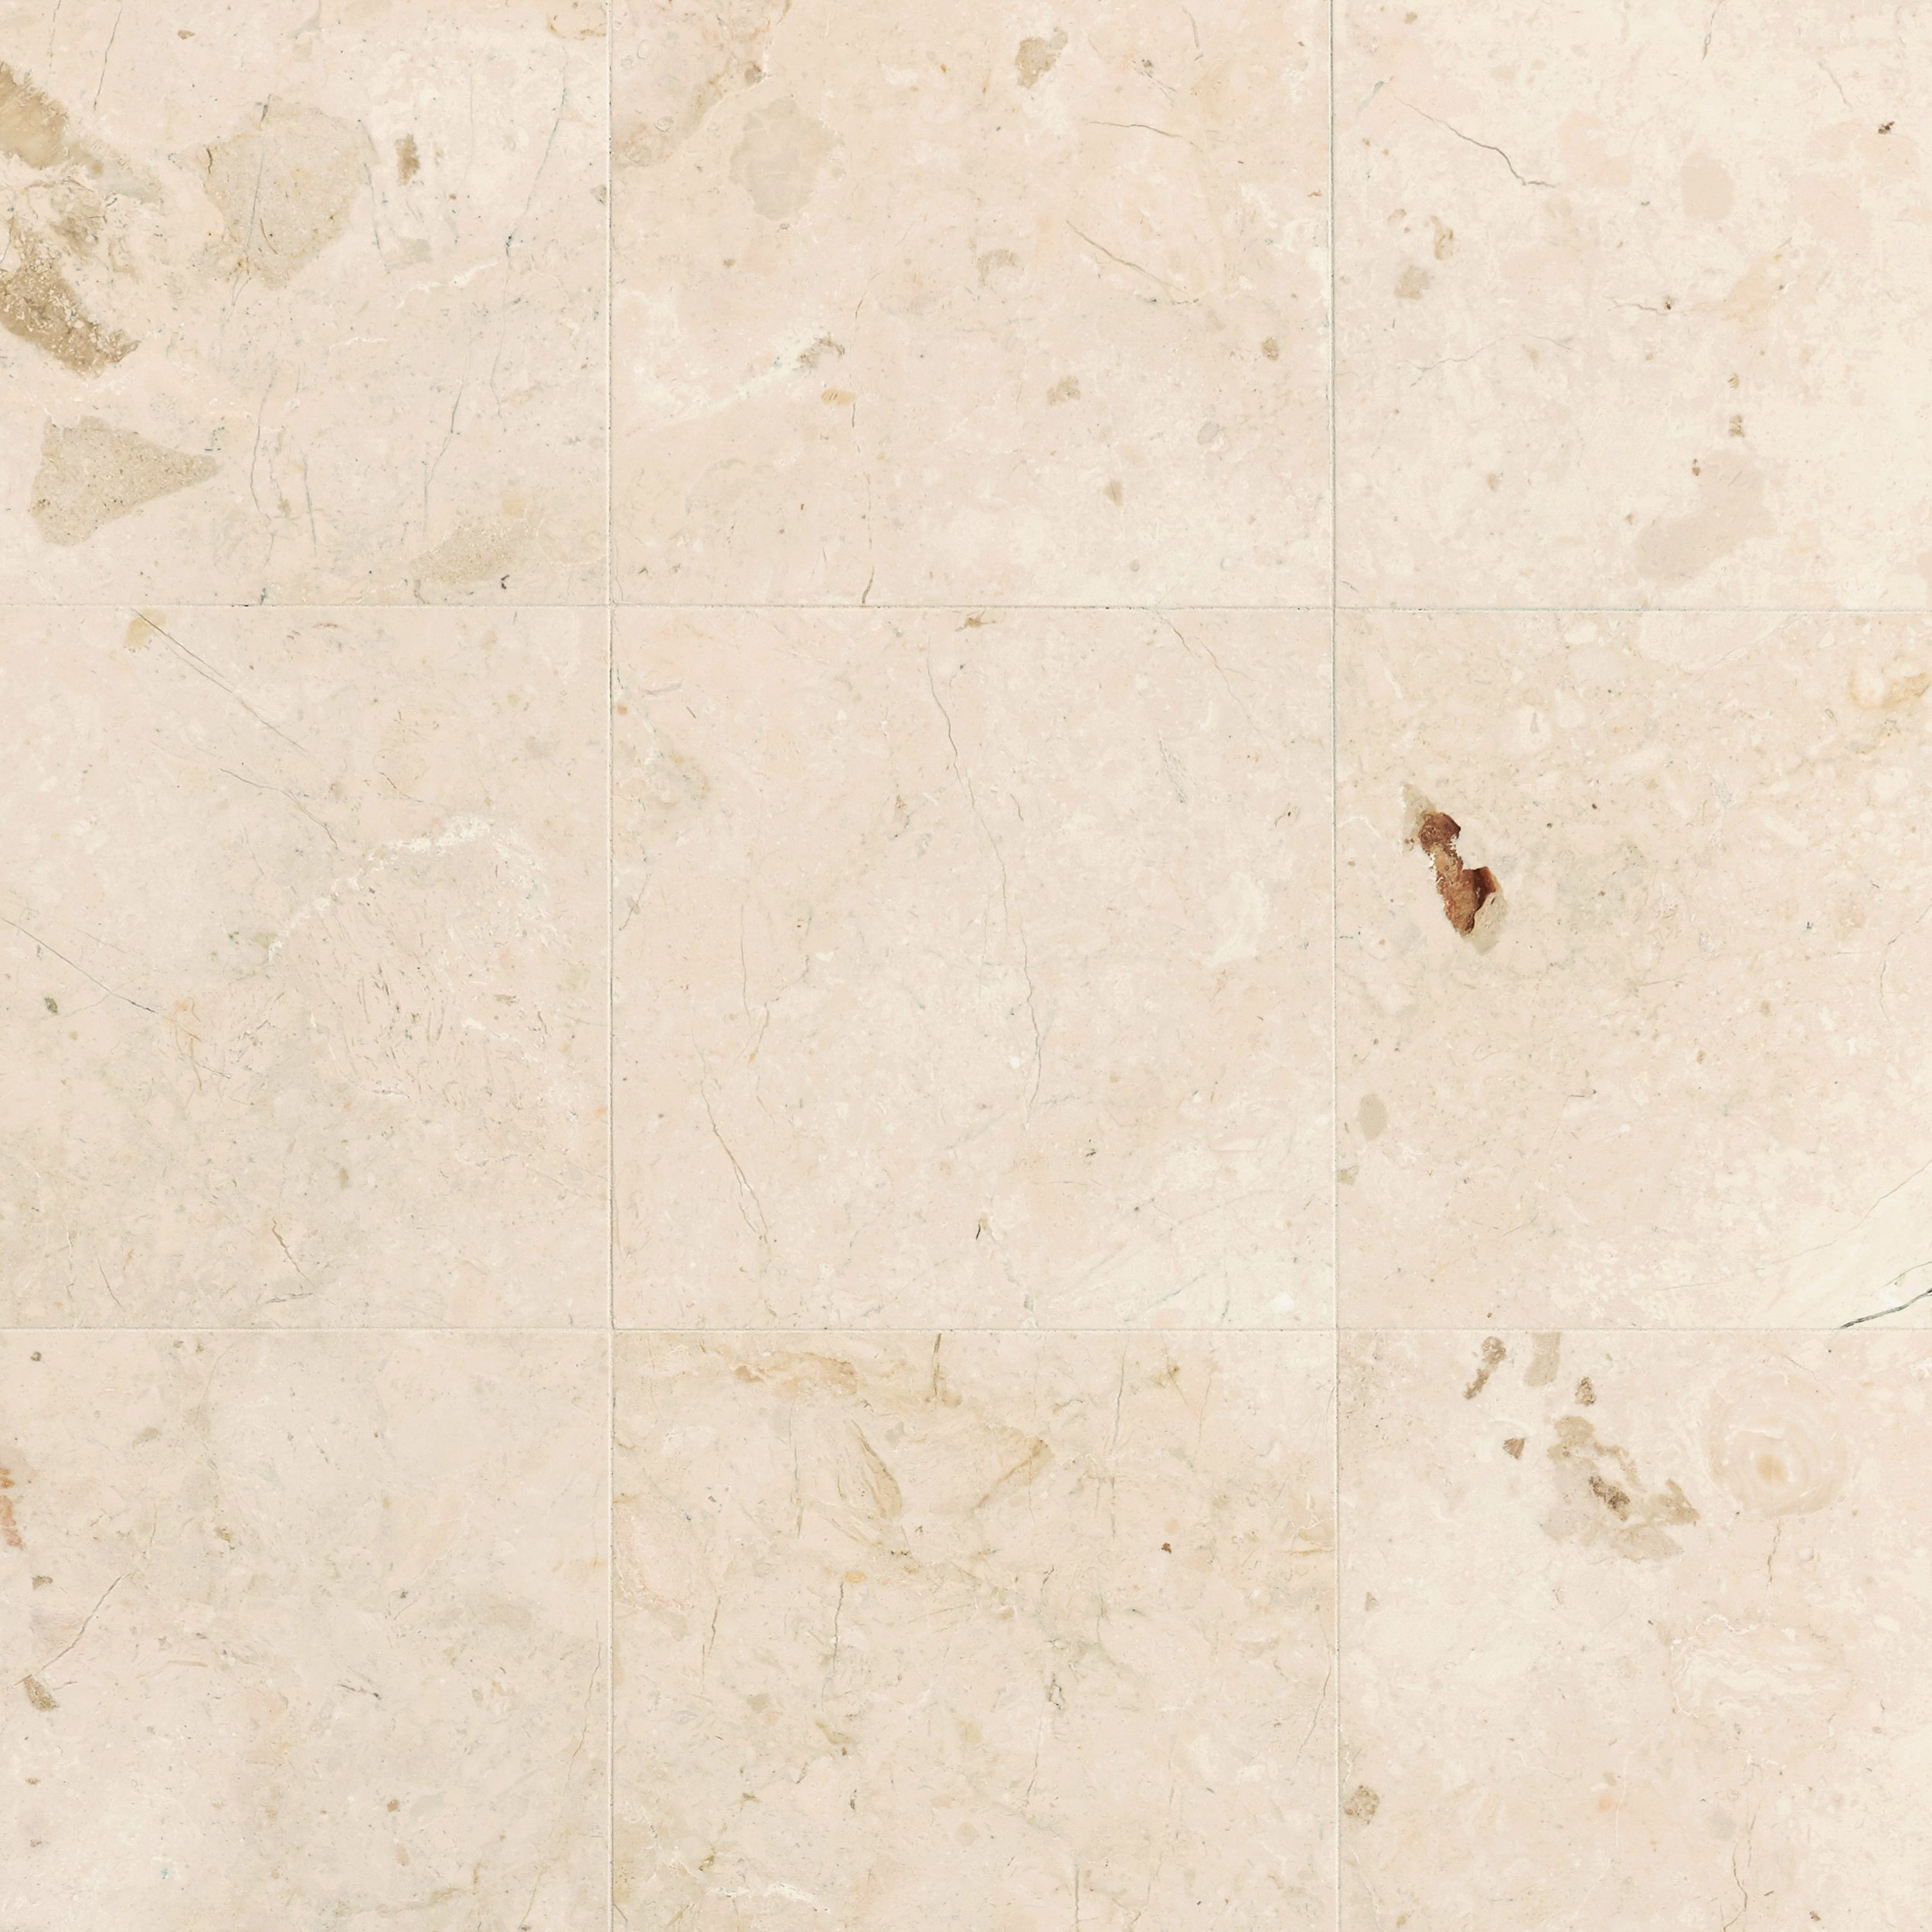 Tuscany Cream Polished Marble Tile 12 X 24 100136639 Floor And